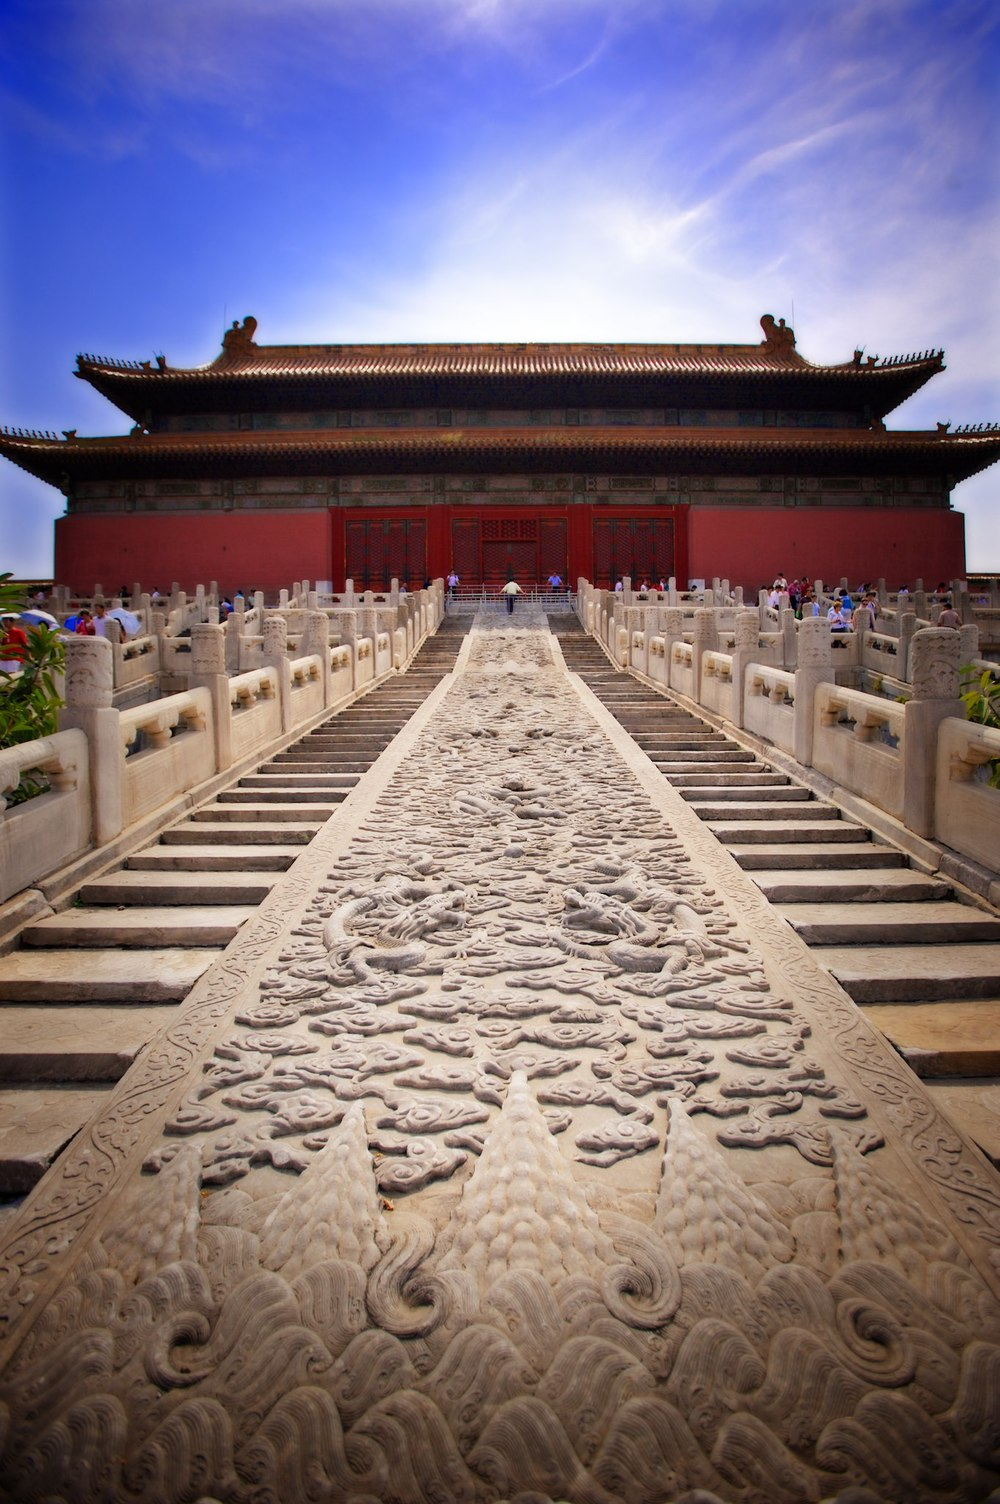 imperial-palace-forbidden-city-beijing-china.jpg